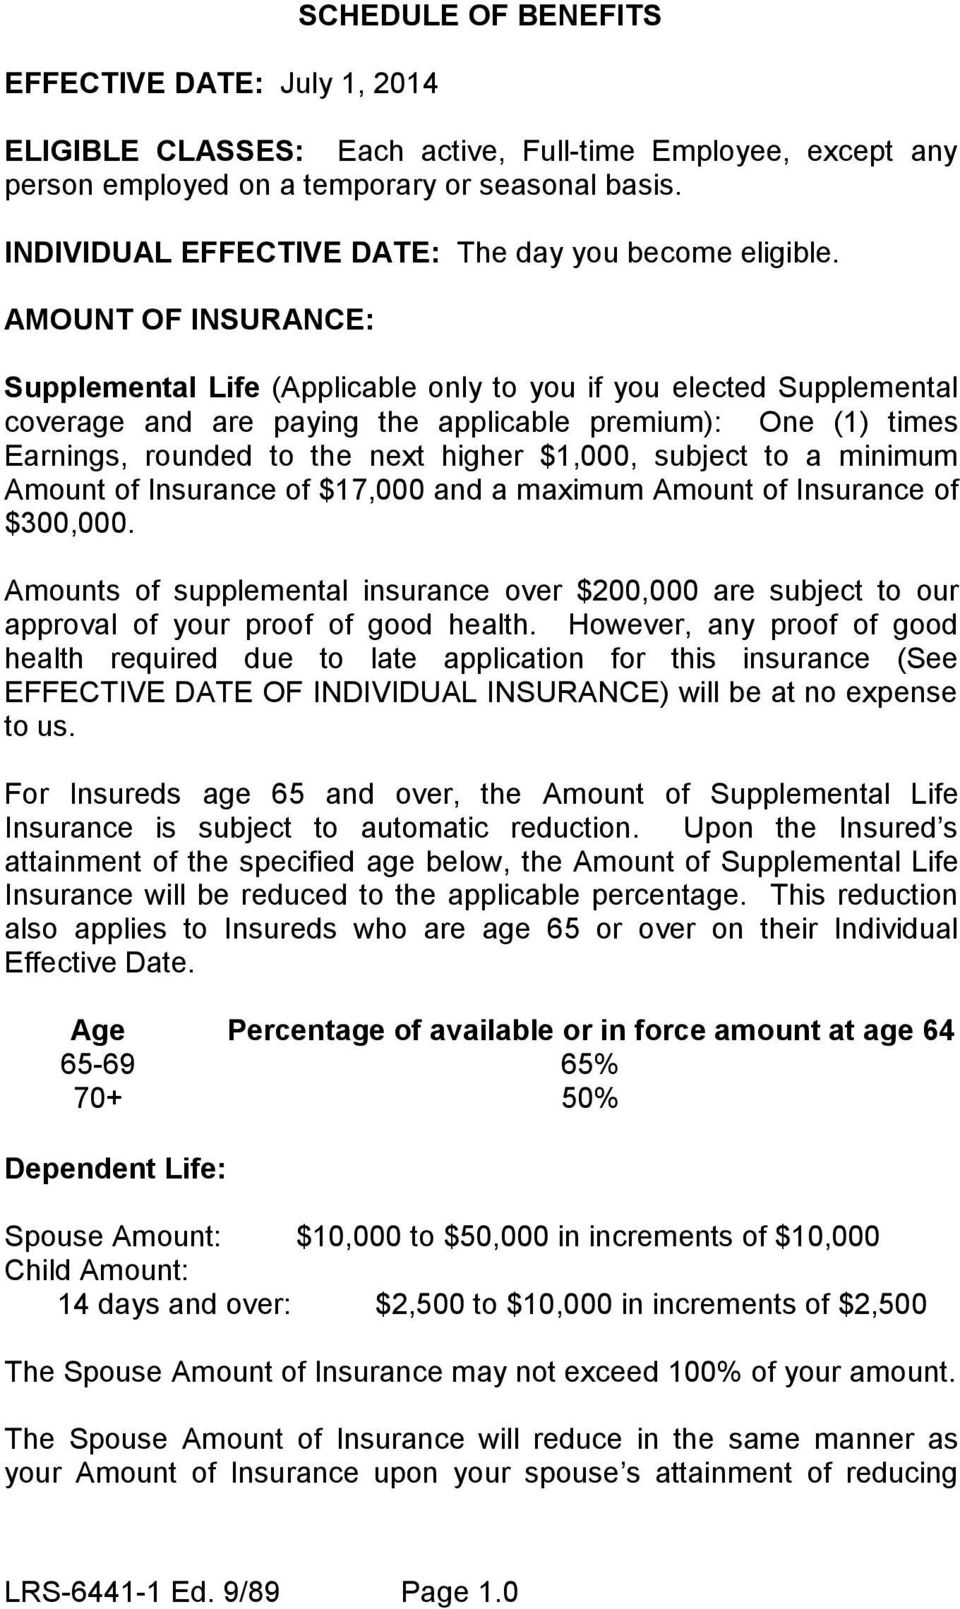 AMOUNT OF INSURANCE: Supplemental Life (Applicable only to you if you elected Supplemental coverage and are paying the applicable premium): One (1) times Earnings, rounded to the next higher $1,000,